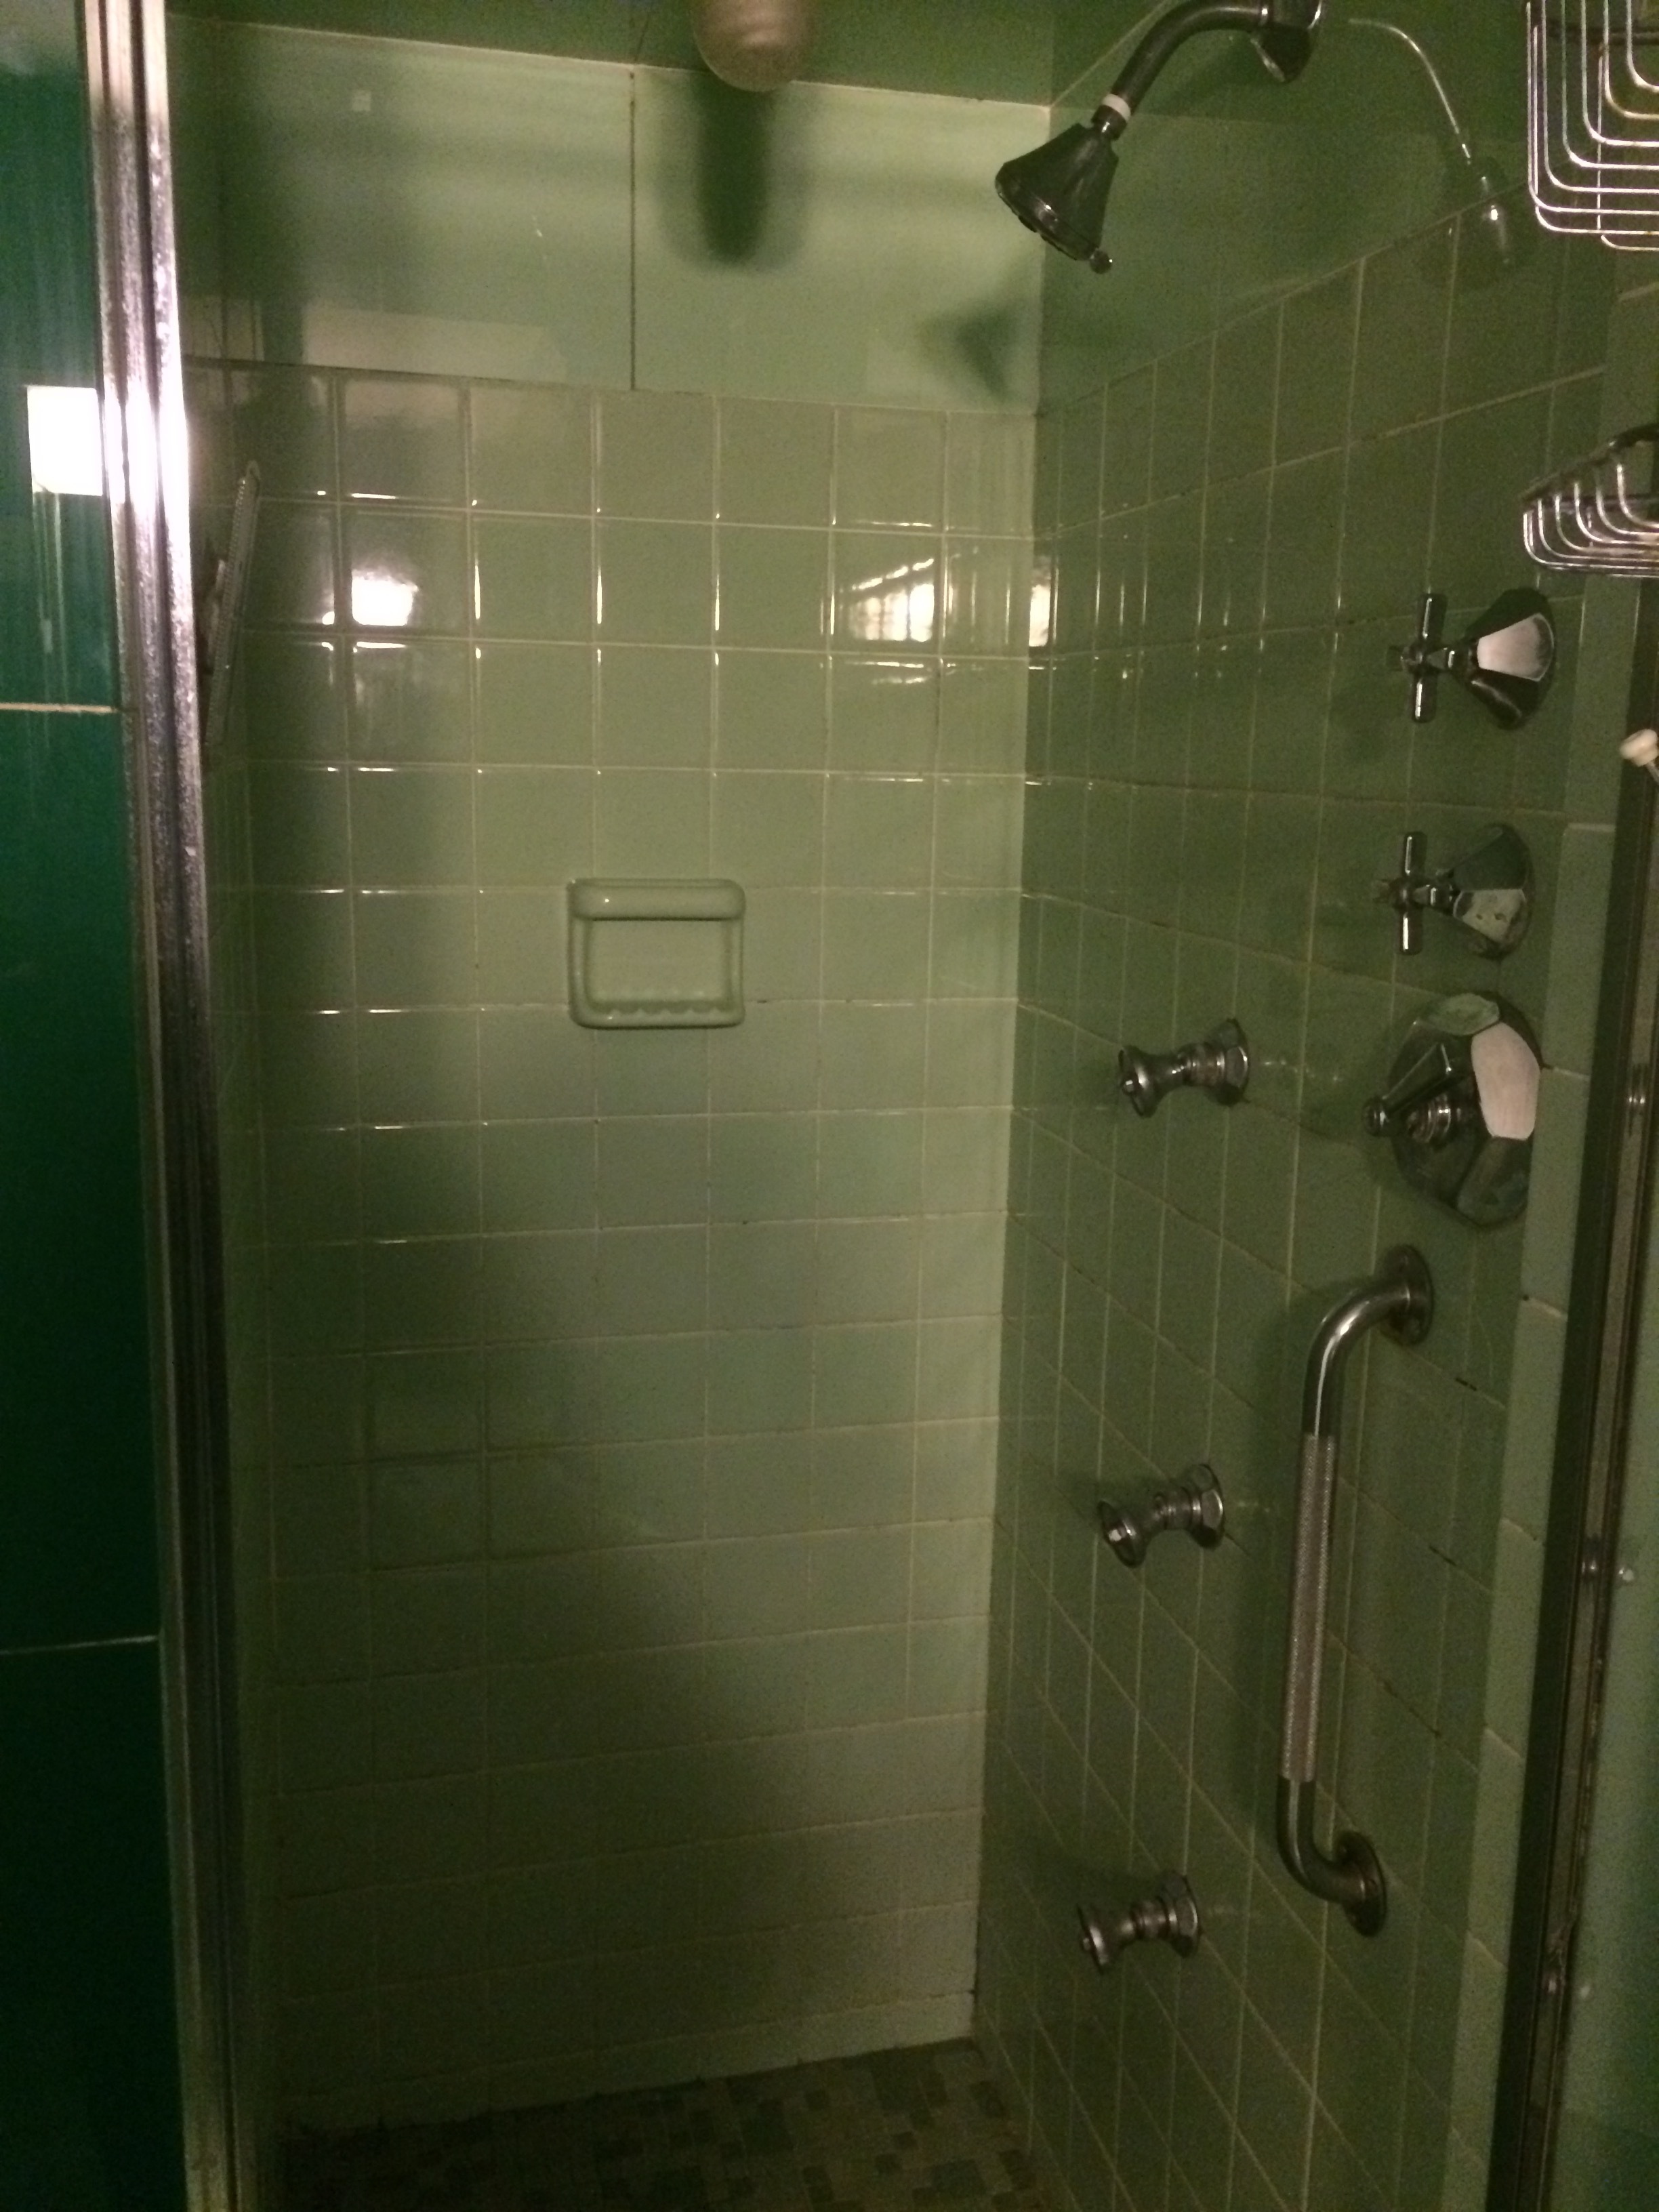 If they made green plumbing fixtures, we would have expected them here.